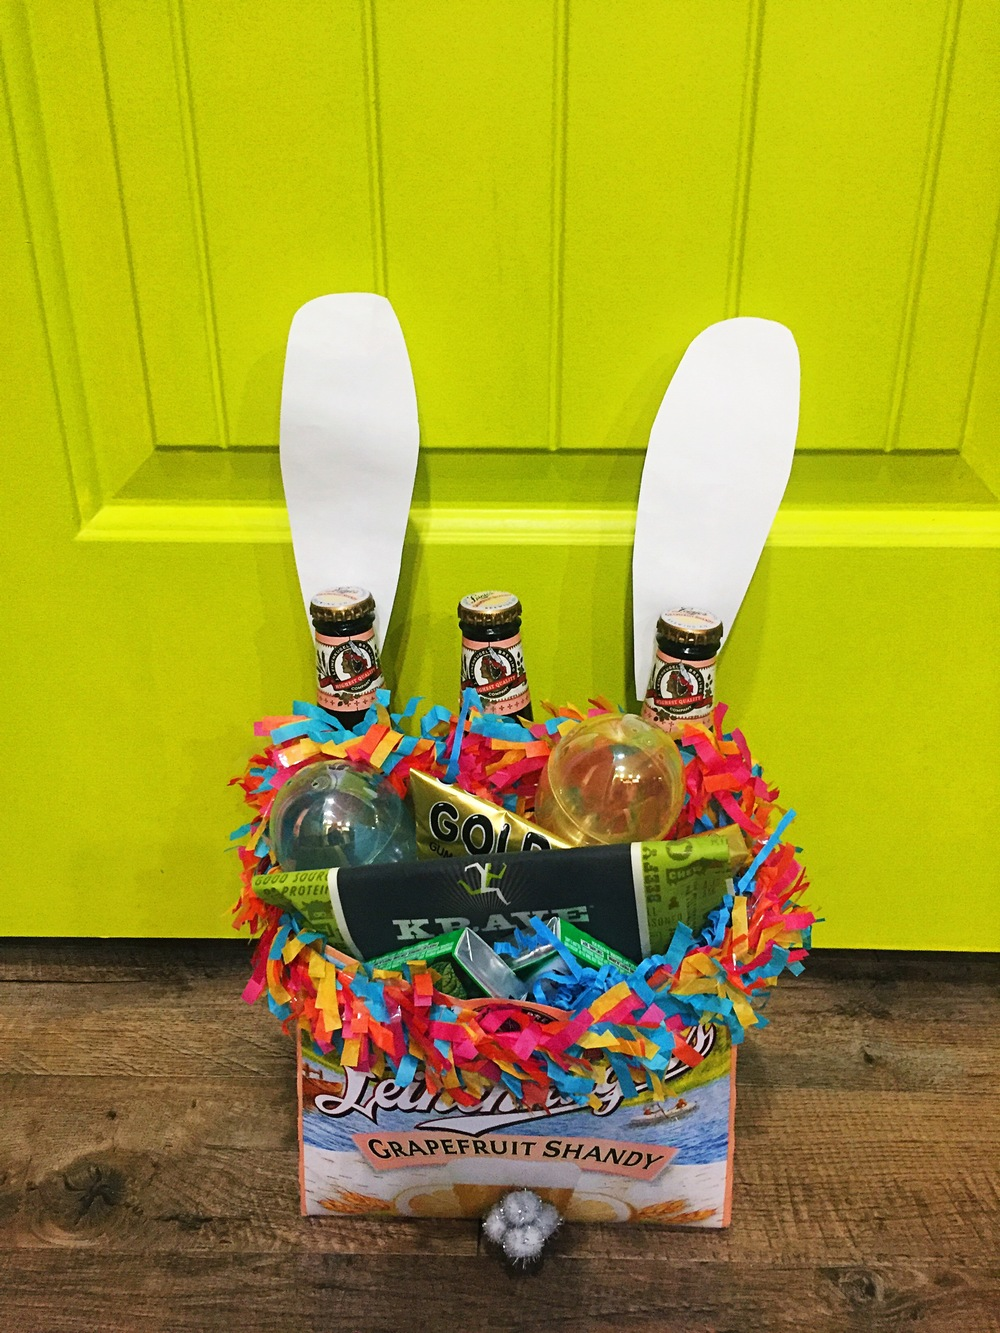 I Stuffed The Basket With A Few Packs Of His Favorite Gum, A Couple Cigars,  Beef Jerky, A Mini Bottle Of Scotch, His Favorite Candy, & A Couple Love  Notes